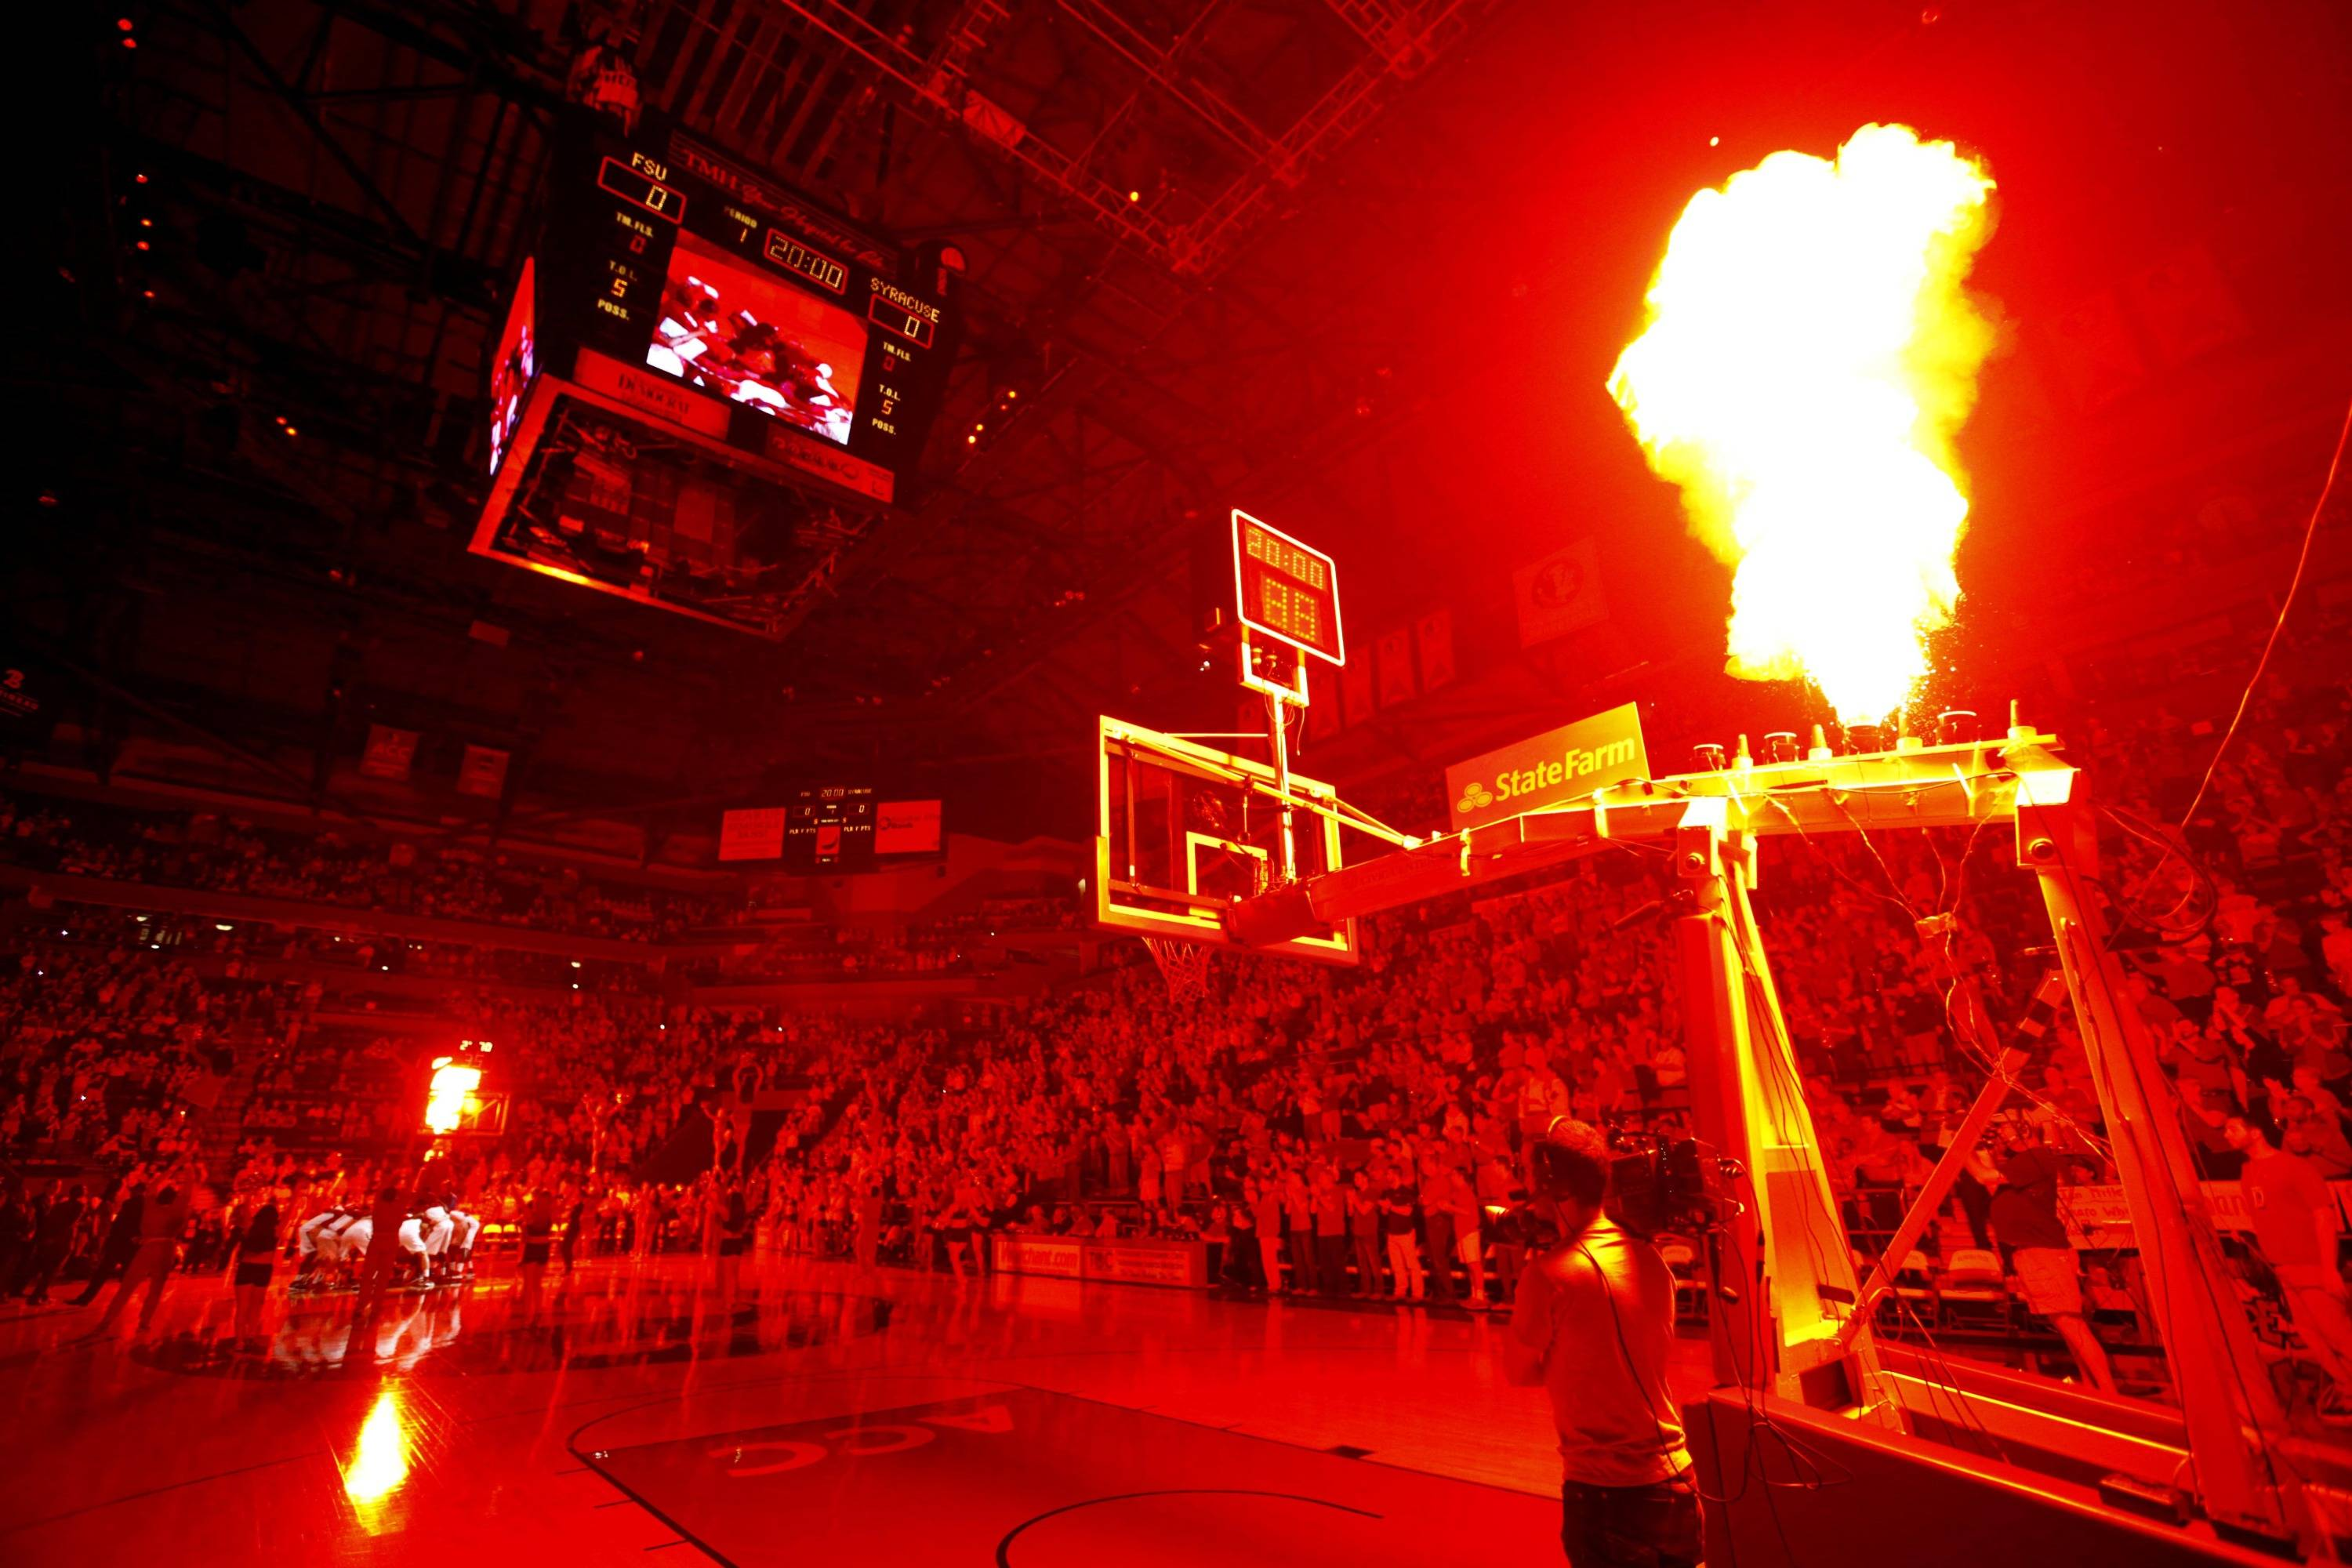 Mar 9, 2014; Tallahassee, FL, USA; Fireworks go off during player introductions before the first half of the game between the Florida State Seminoles and Syracuse Orange at Donald L. Tucker Center. Syracuse defeated Florida State 74-58. Mandatory Credit: Matt Stamey-USA TODAY Sports